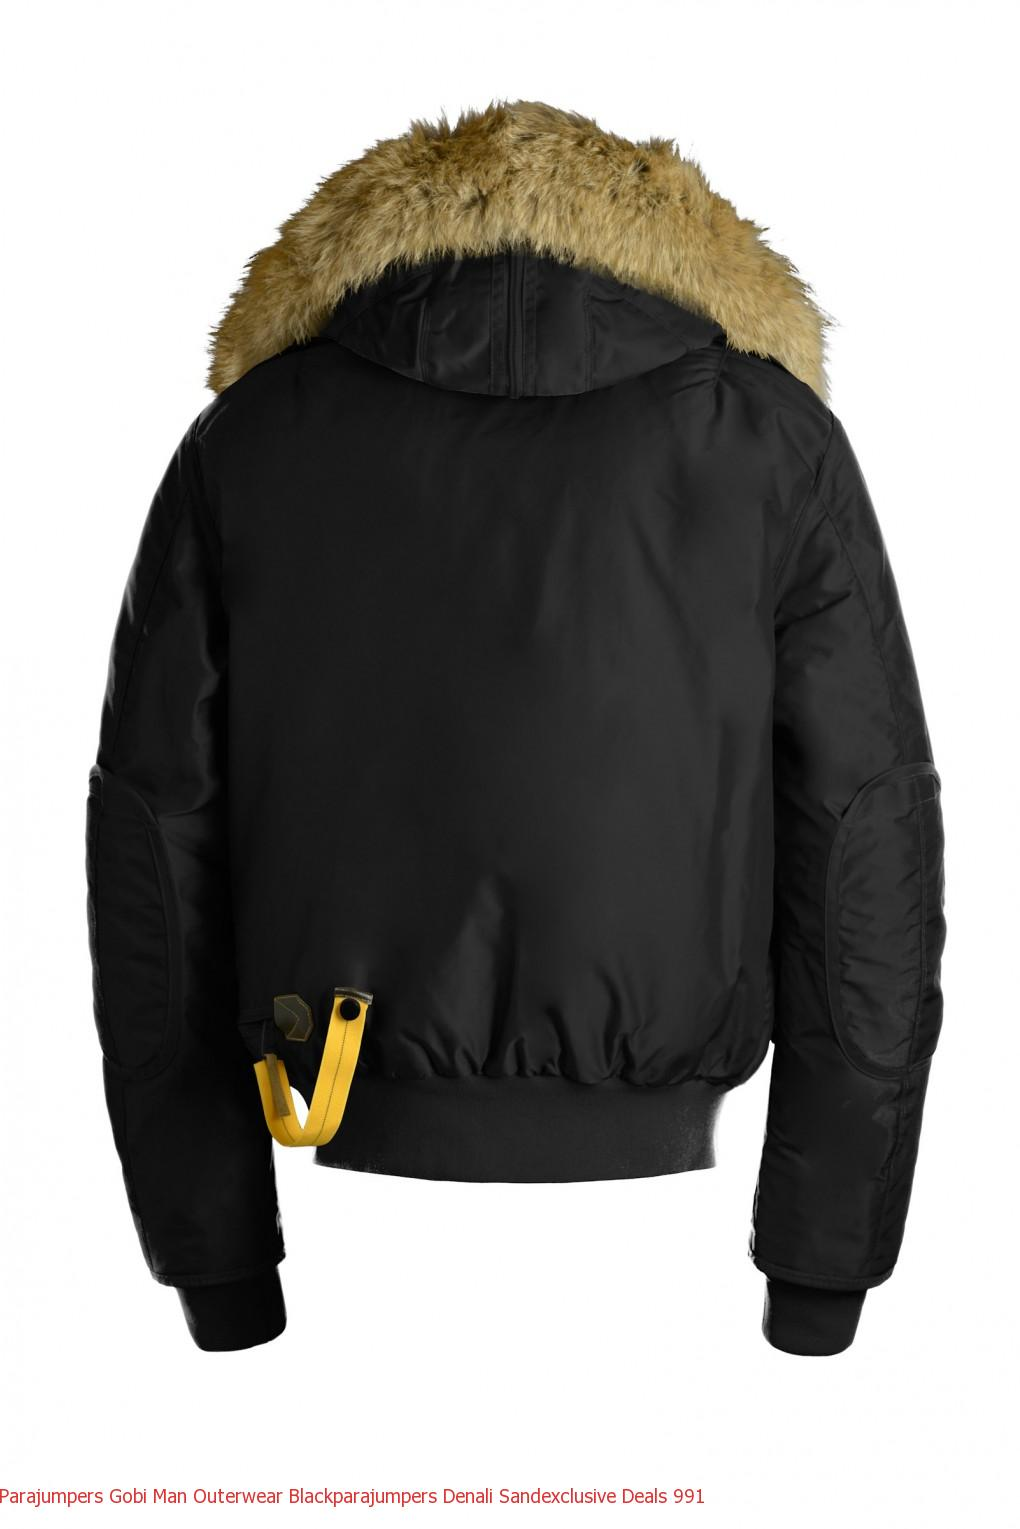 Parajumpers Gobi Man Outerwear Blackparajumpers Denali Sandexclusive Deals 992